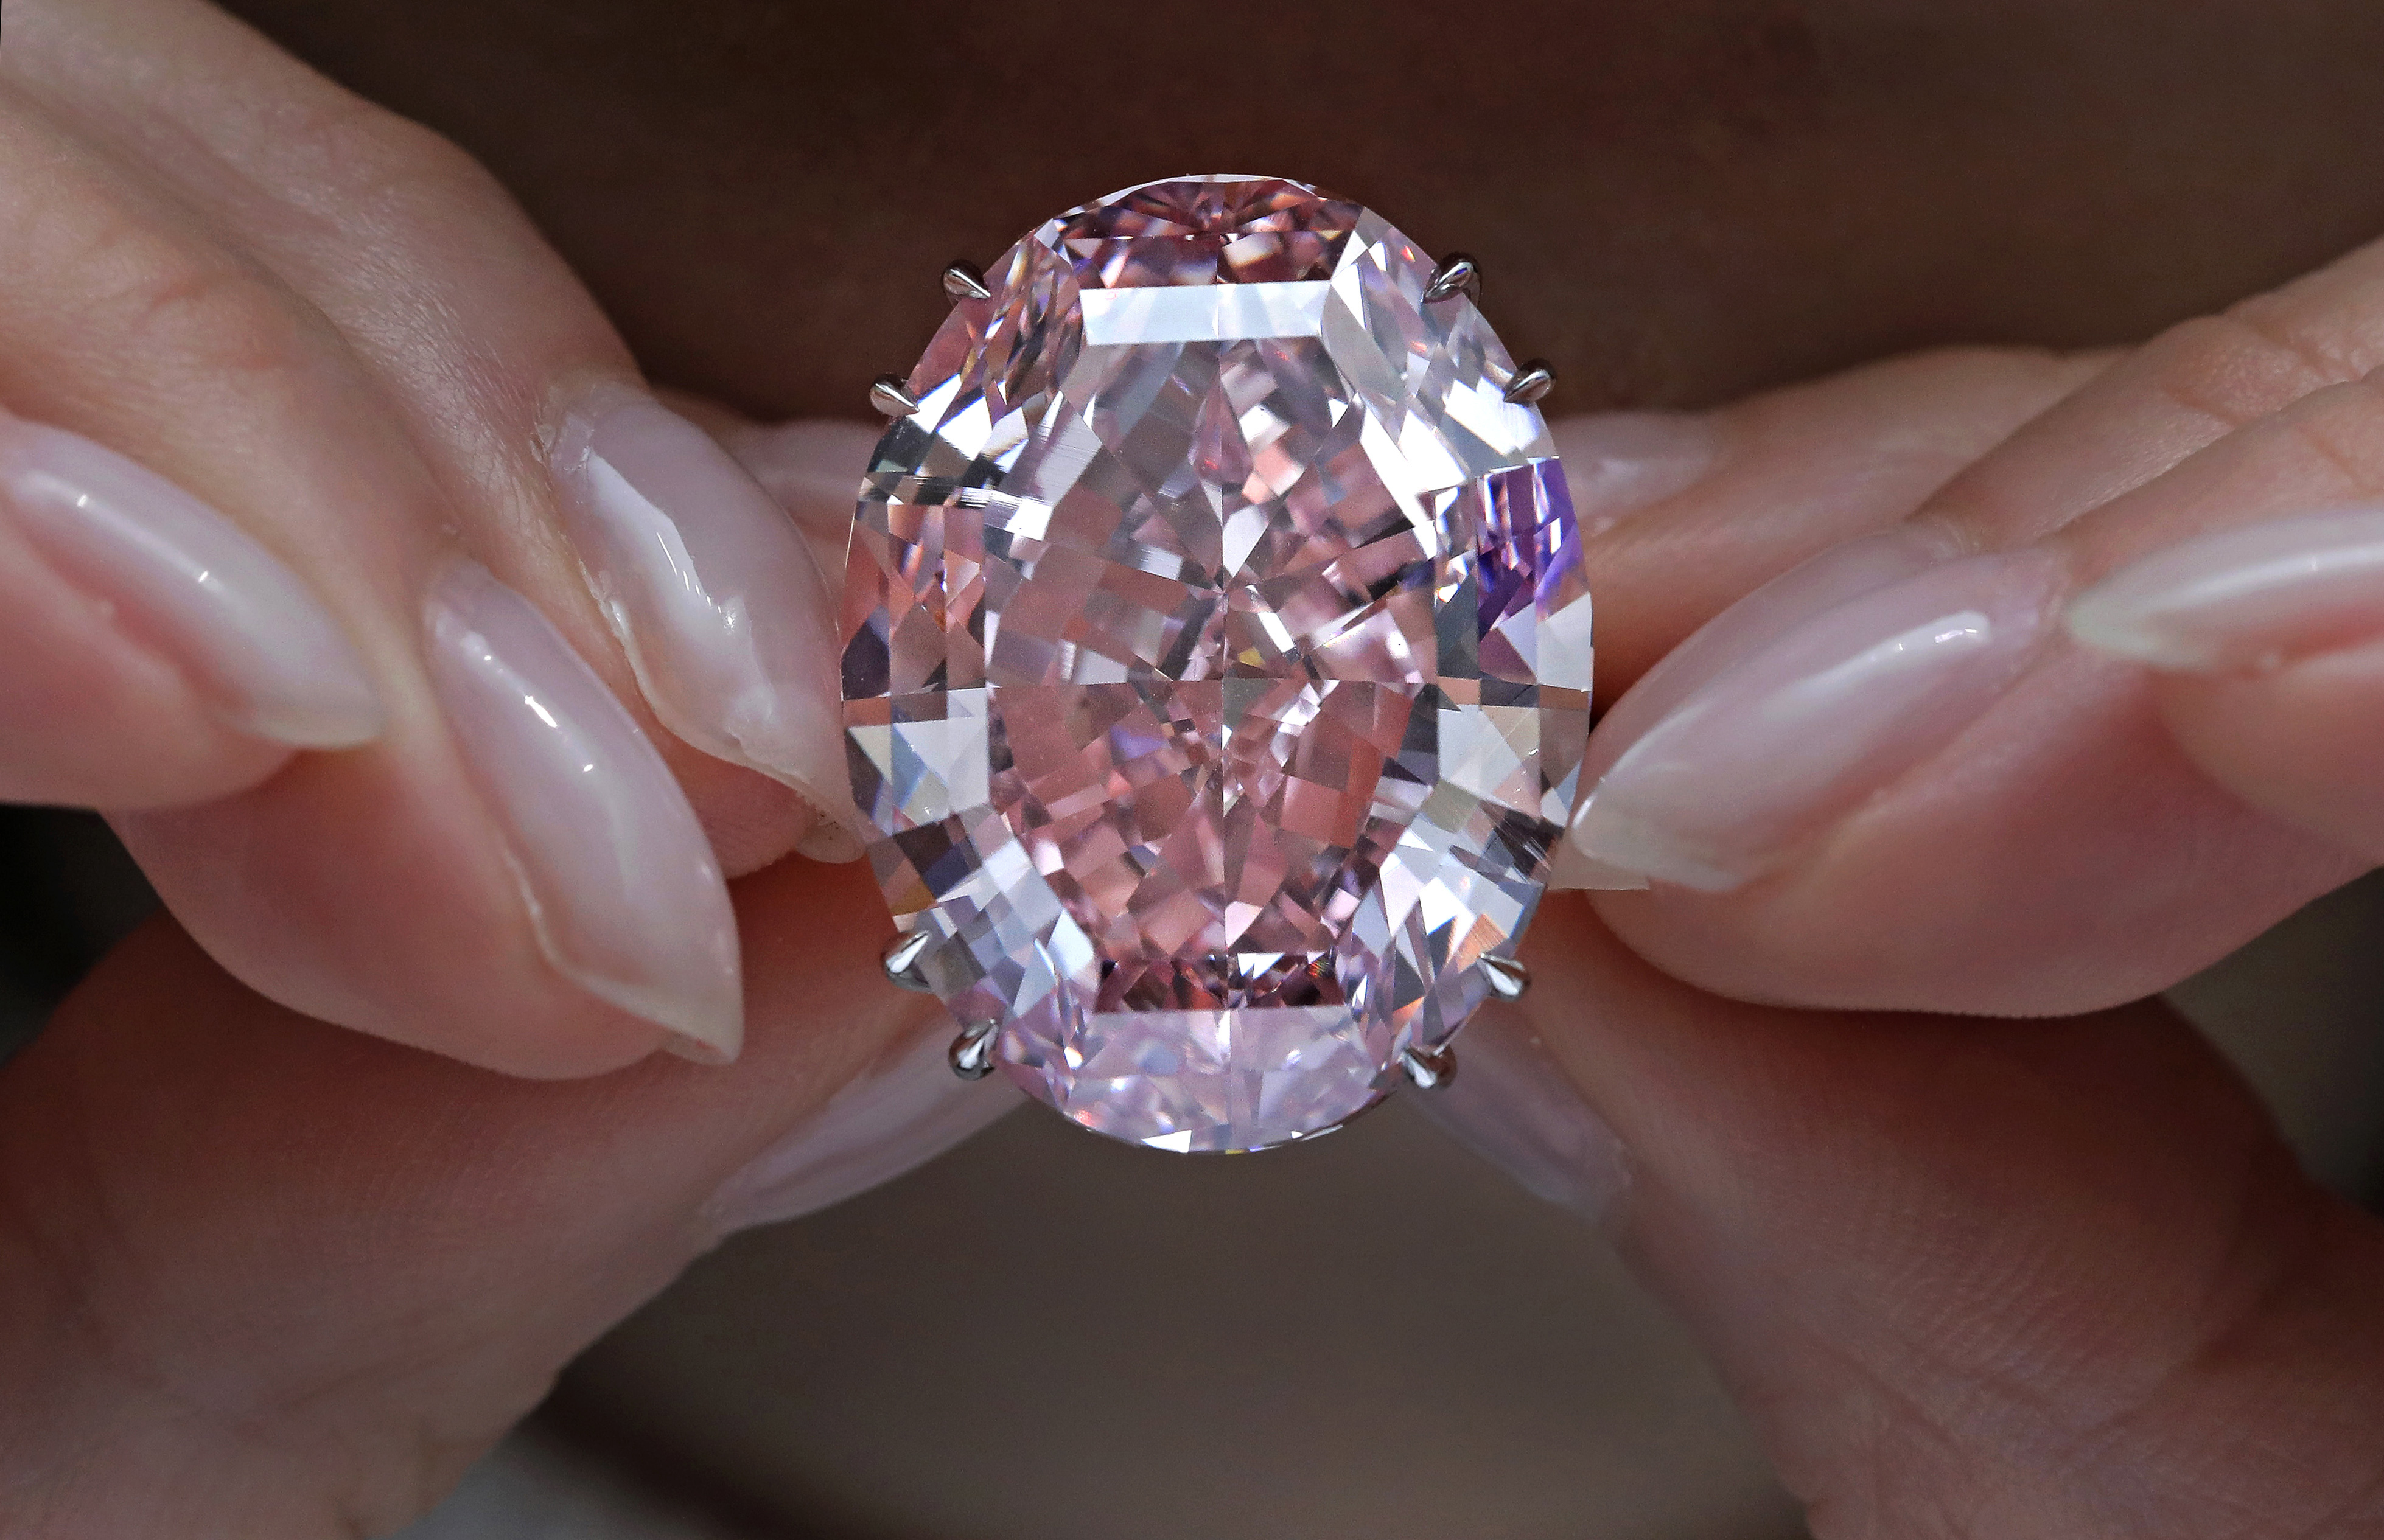 Pink Star' Diamond Sells For $71 Million, Smashing Auction Record : The Two-Way : NPR